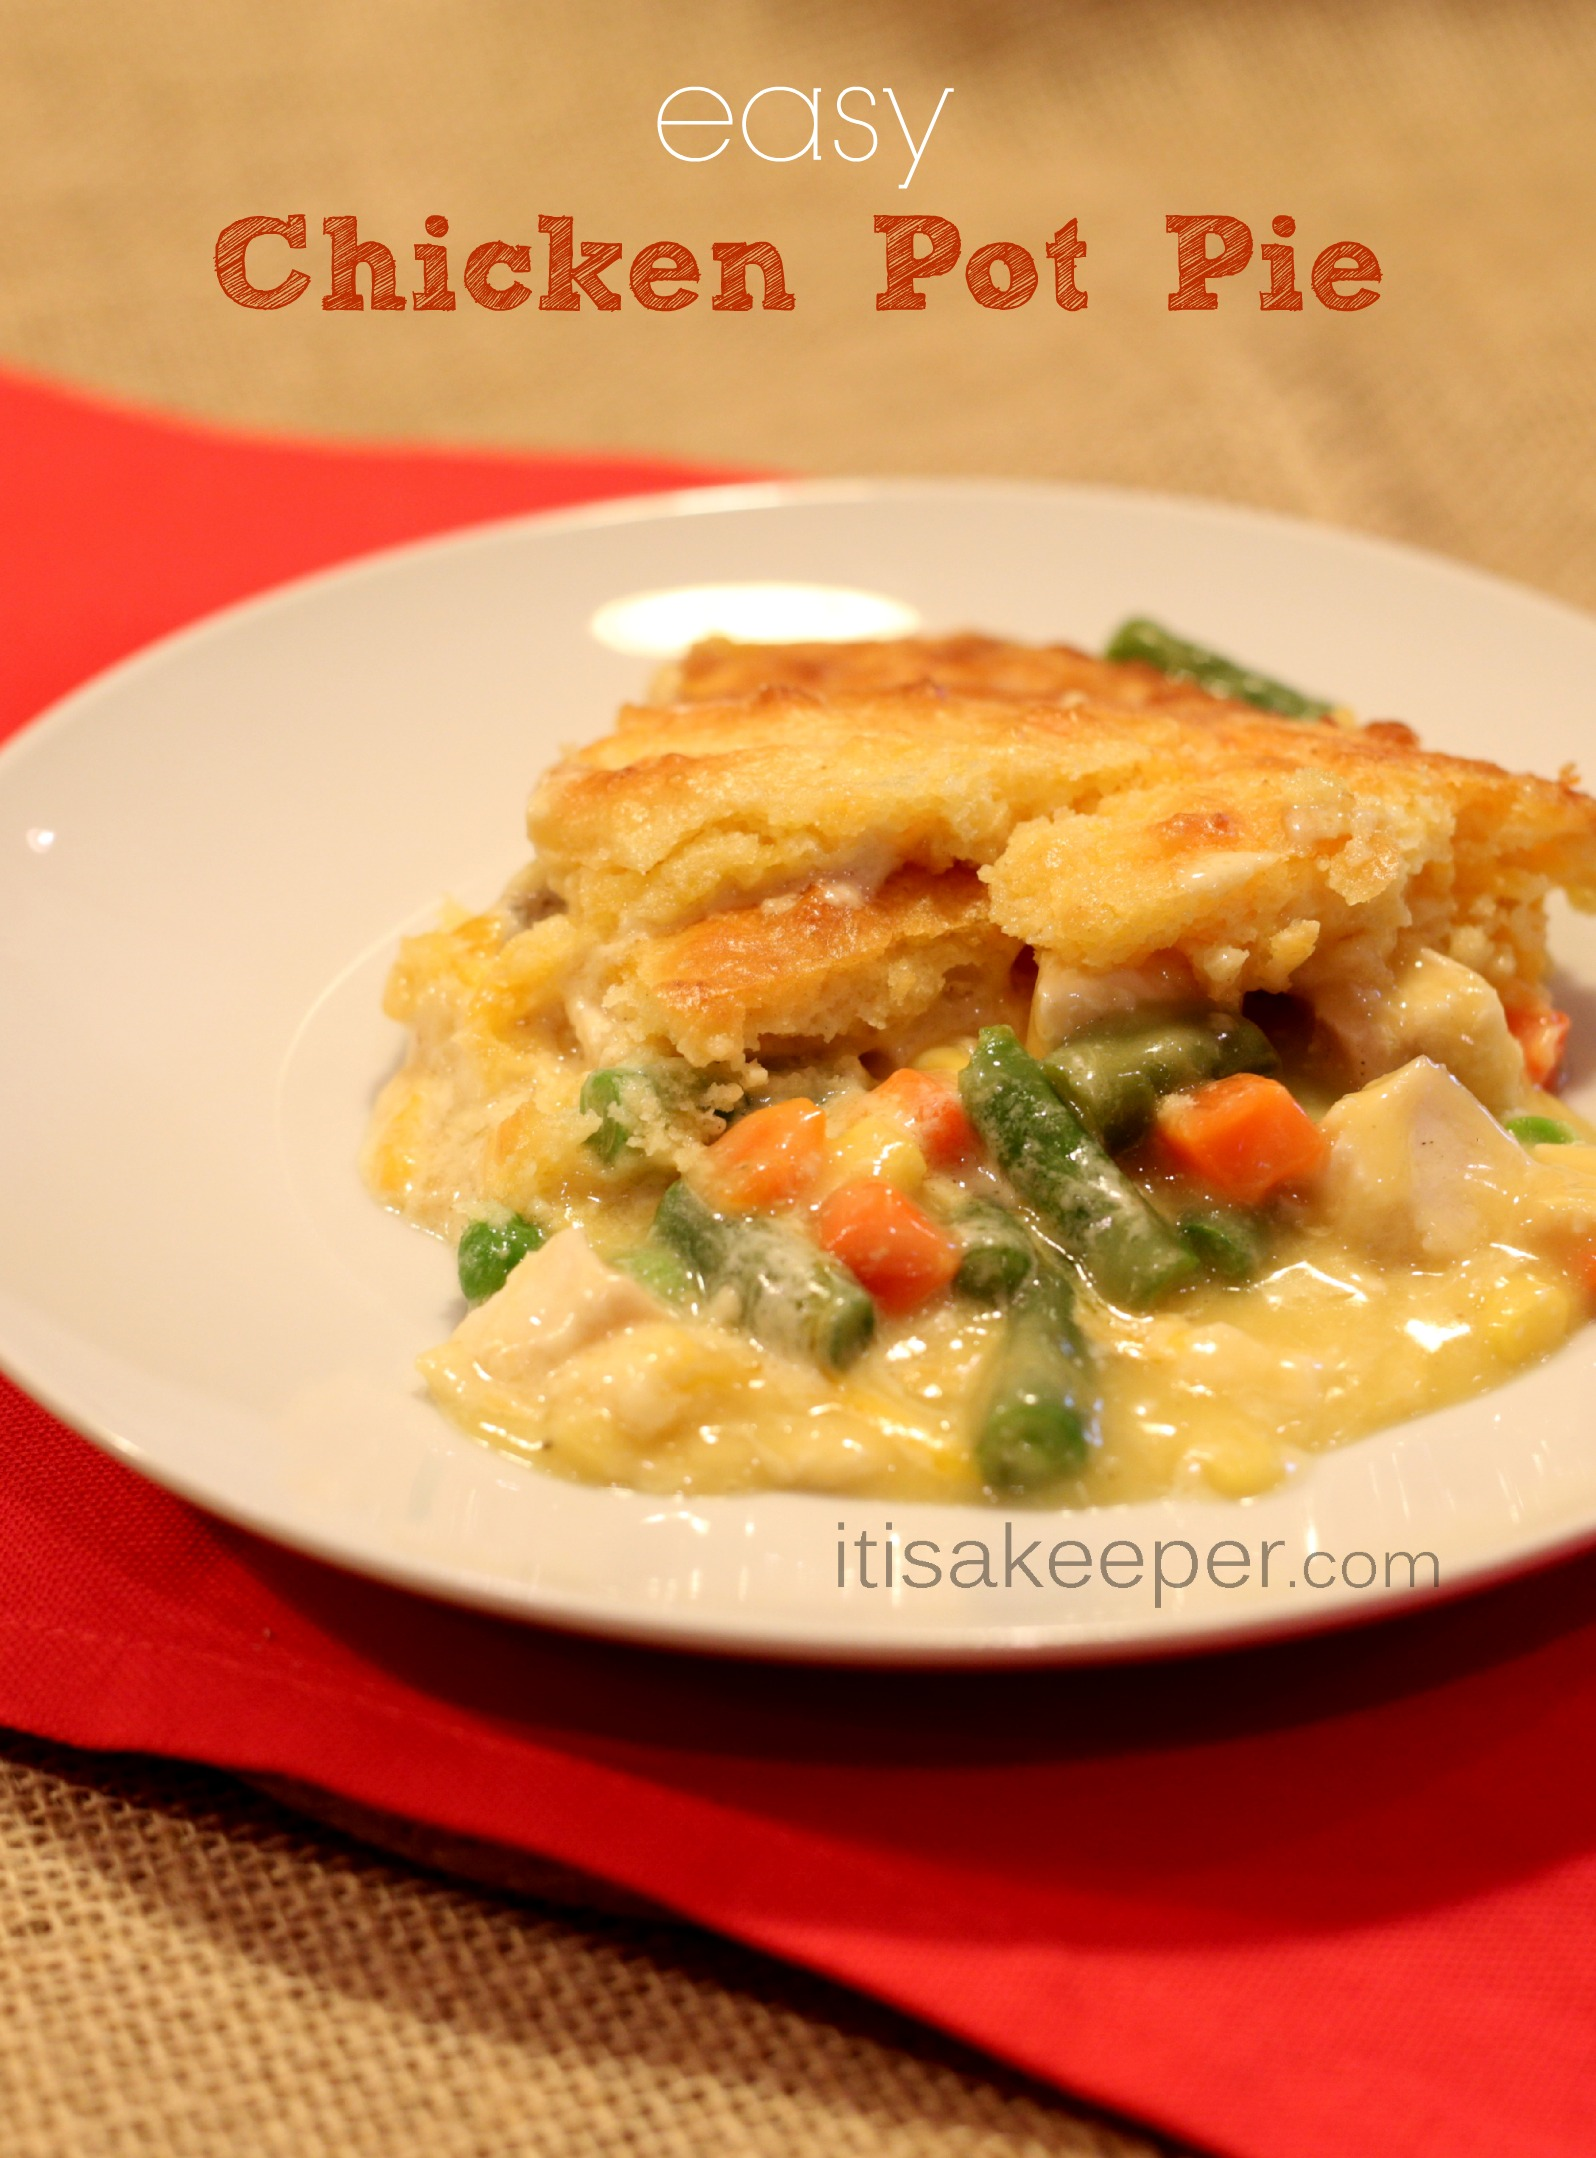 Easy Chicken Pot Pie from It's a Keeper